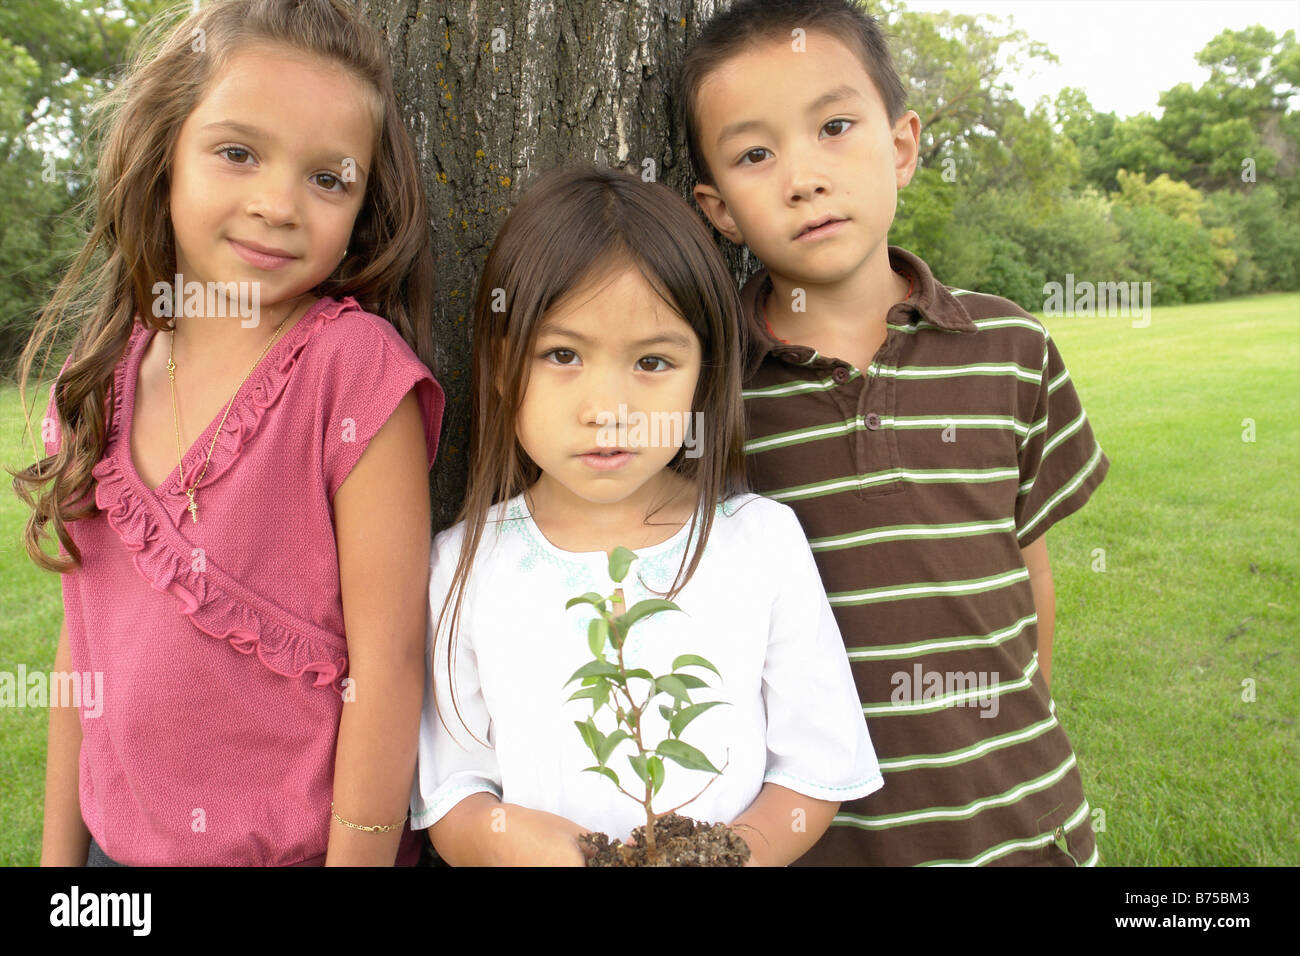 Five Year Old Girl Holds Small Tree Beside Seven Year Old